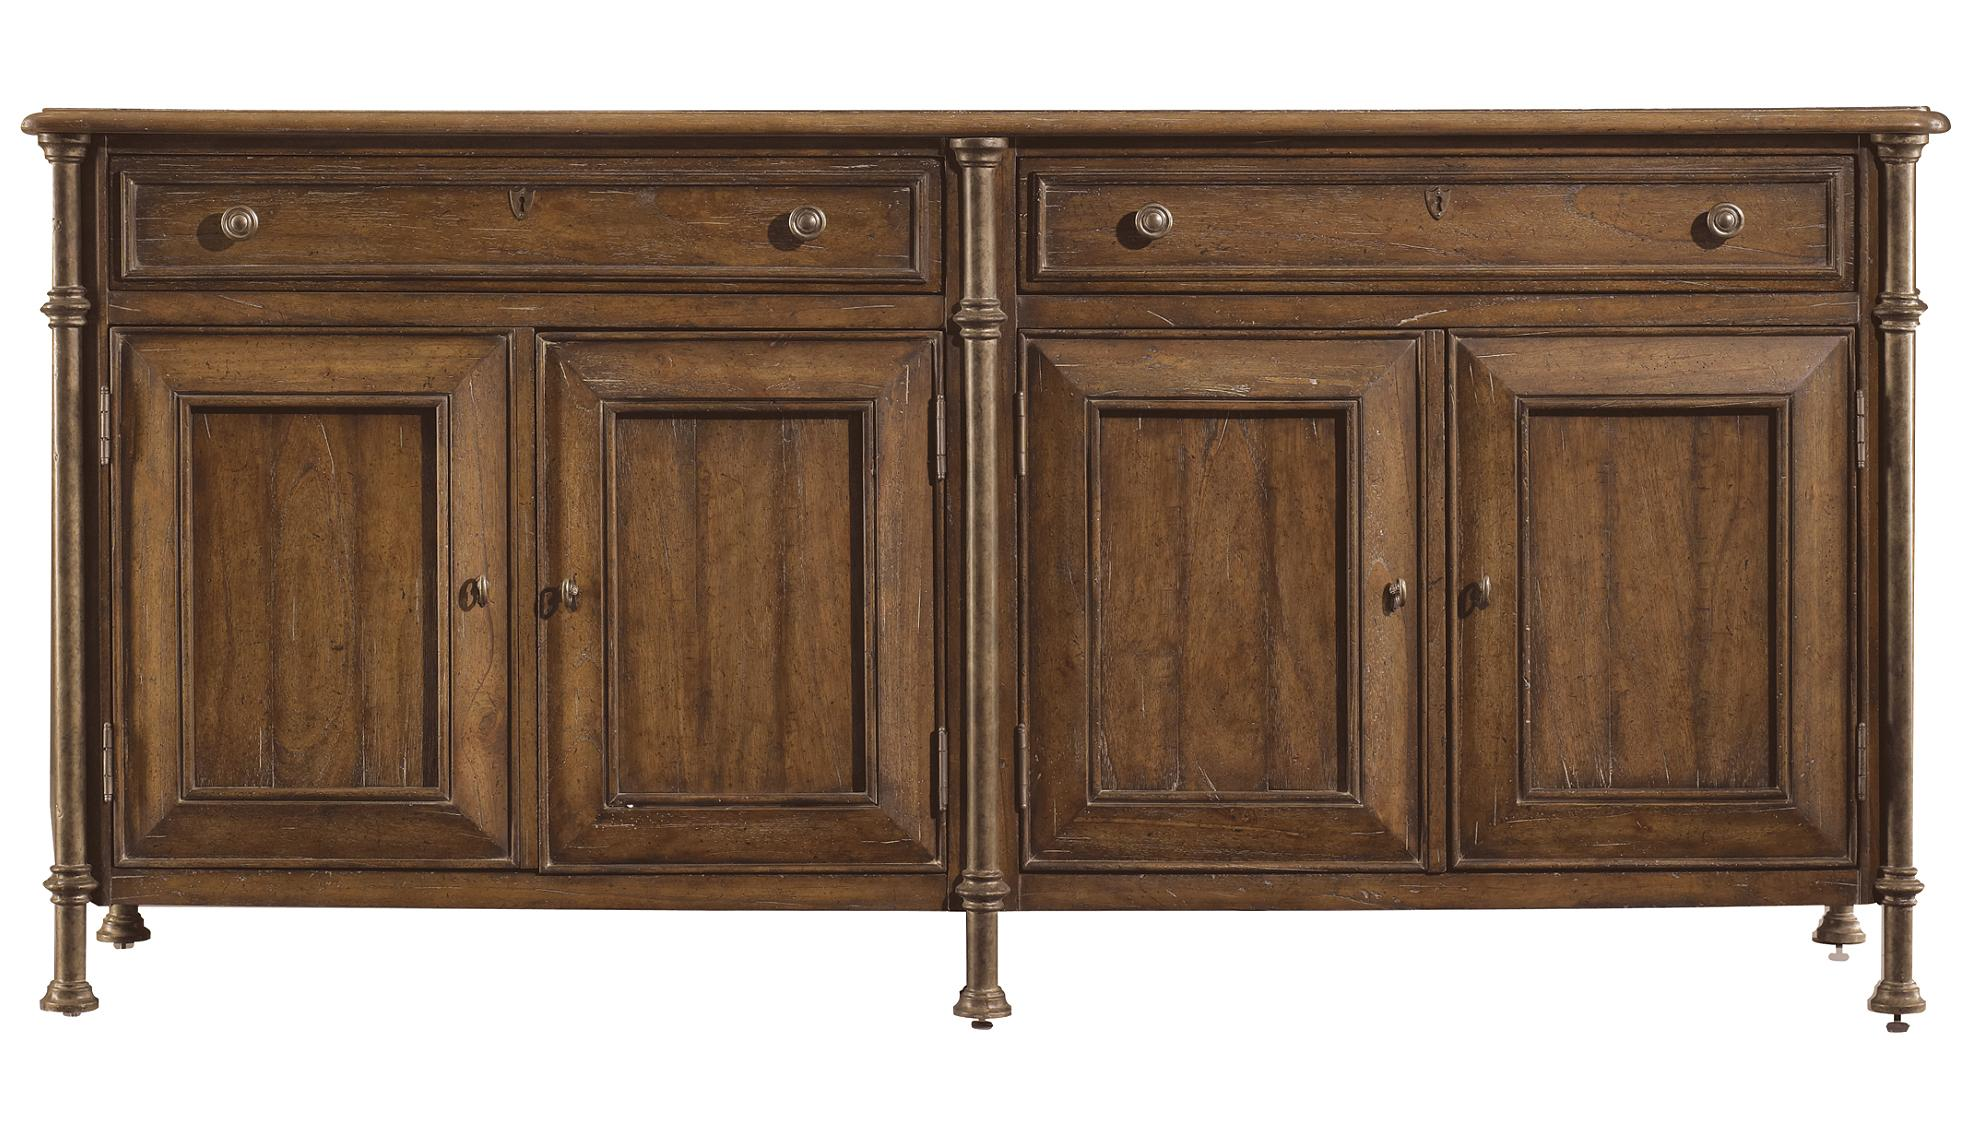 Stanley Furniture European Farmhouse Campagne Cabinet - Item Number: 018-61-05